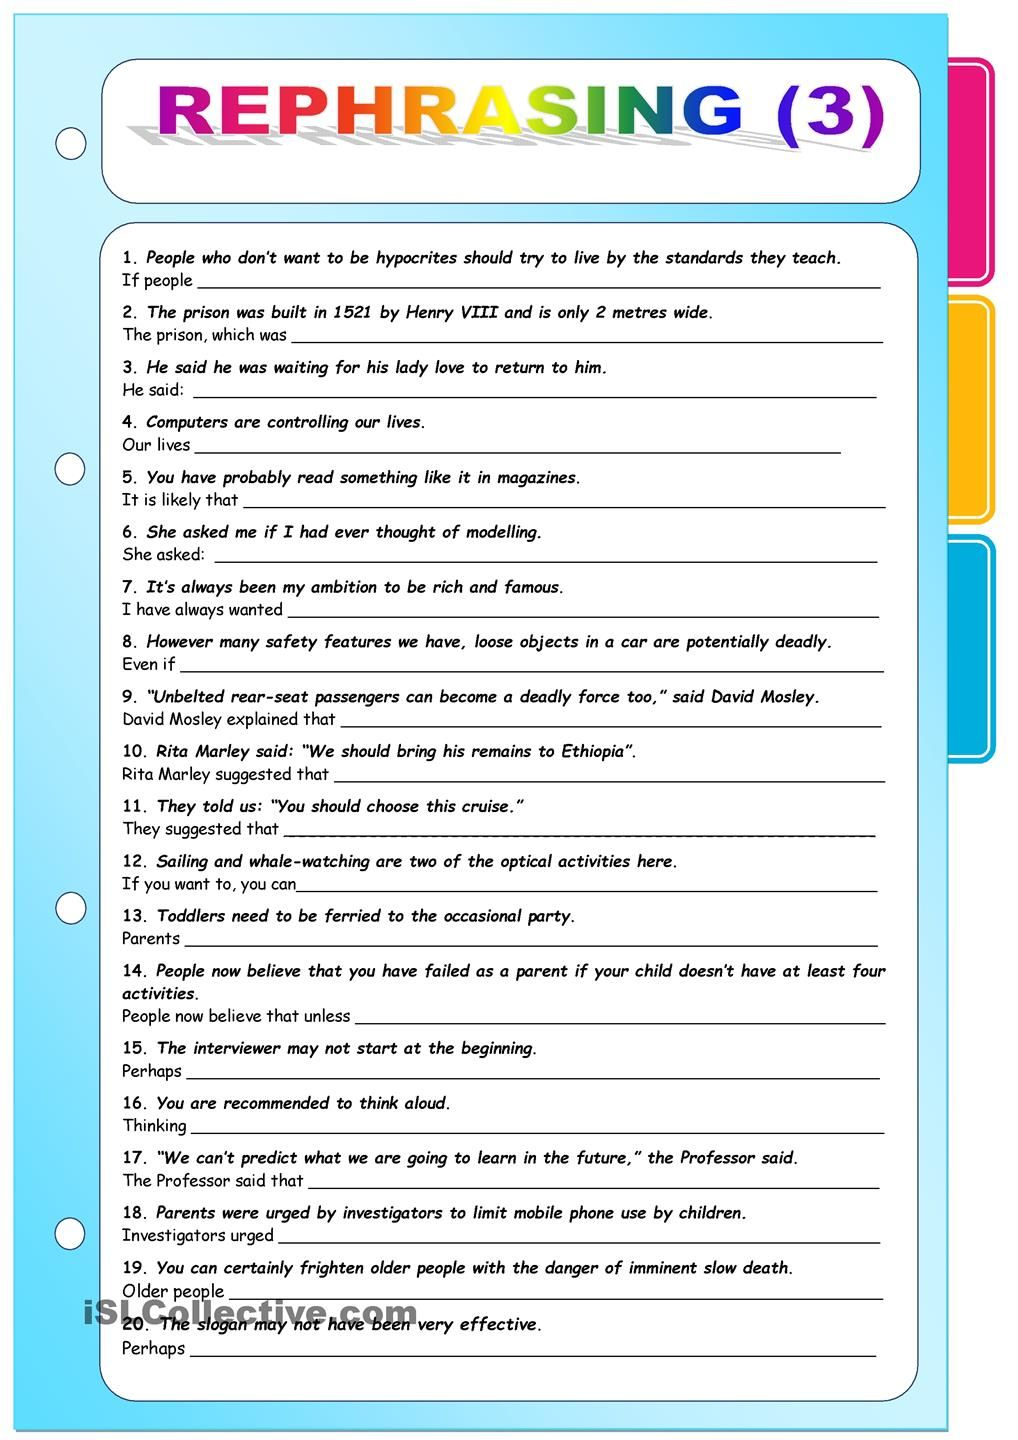 Rephrasing 3 [Key included] | English Class | Pinterest | Englisch